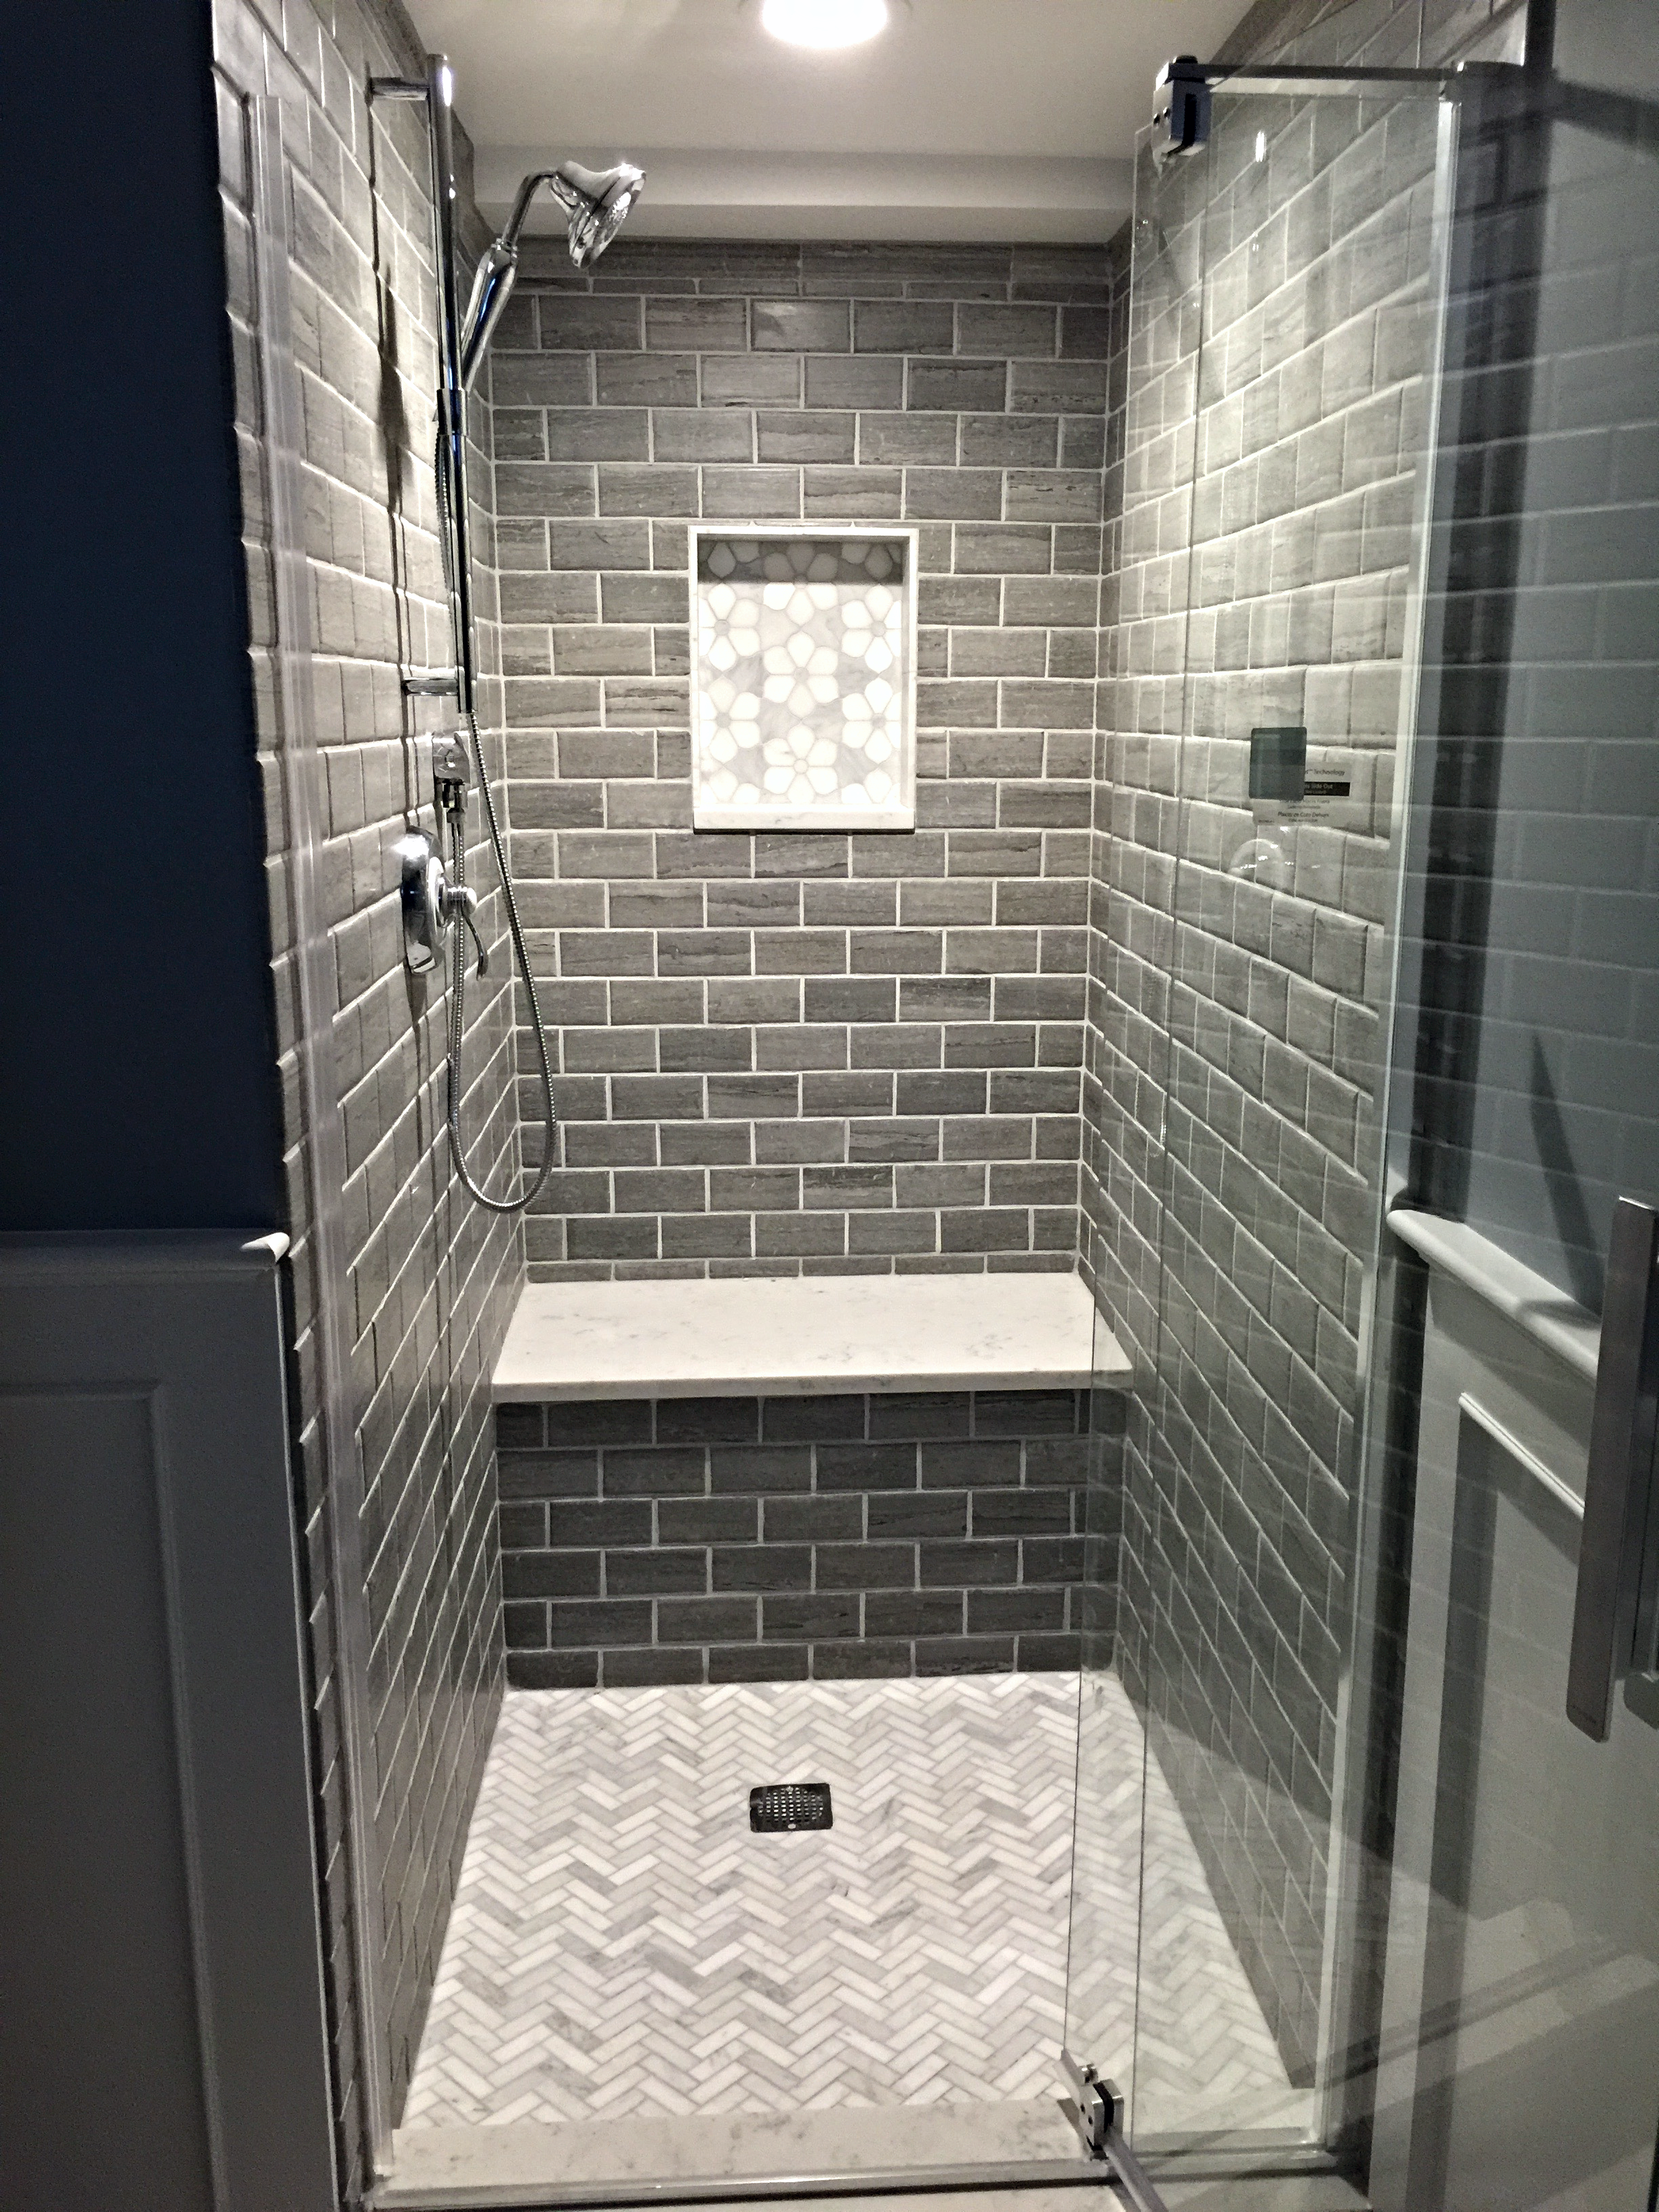 We've seen a few basement showers that are drab and tiny. Not this one.